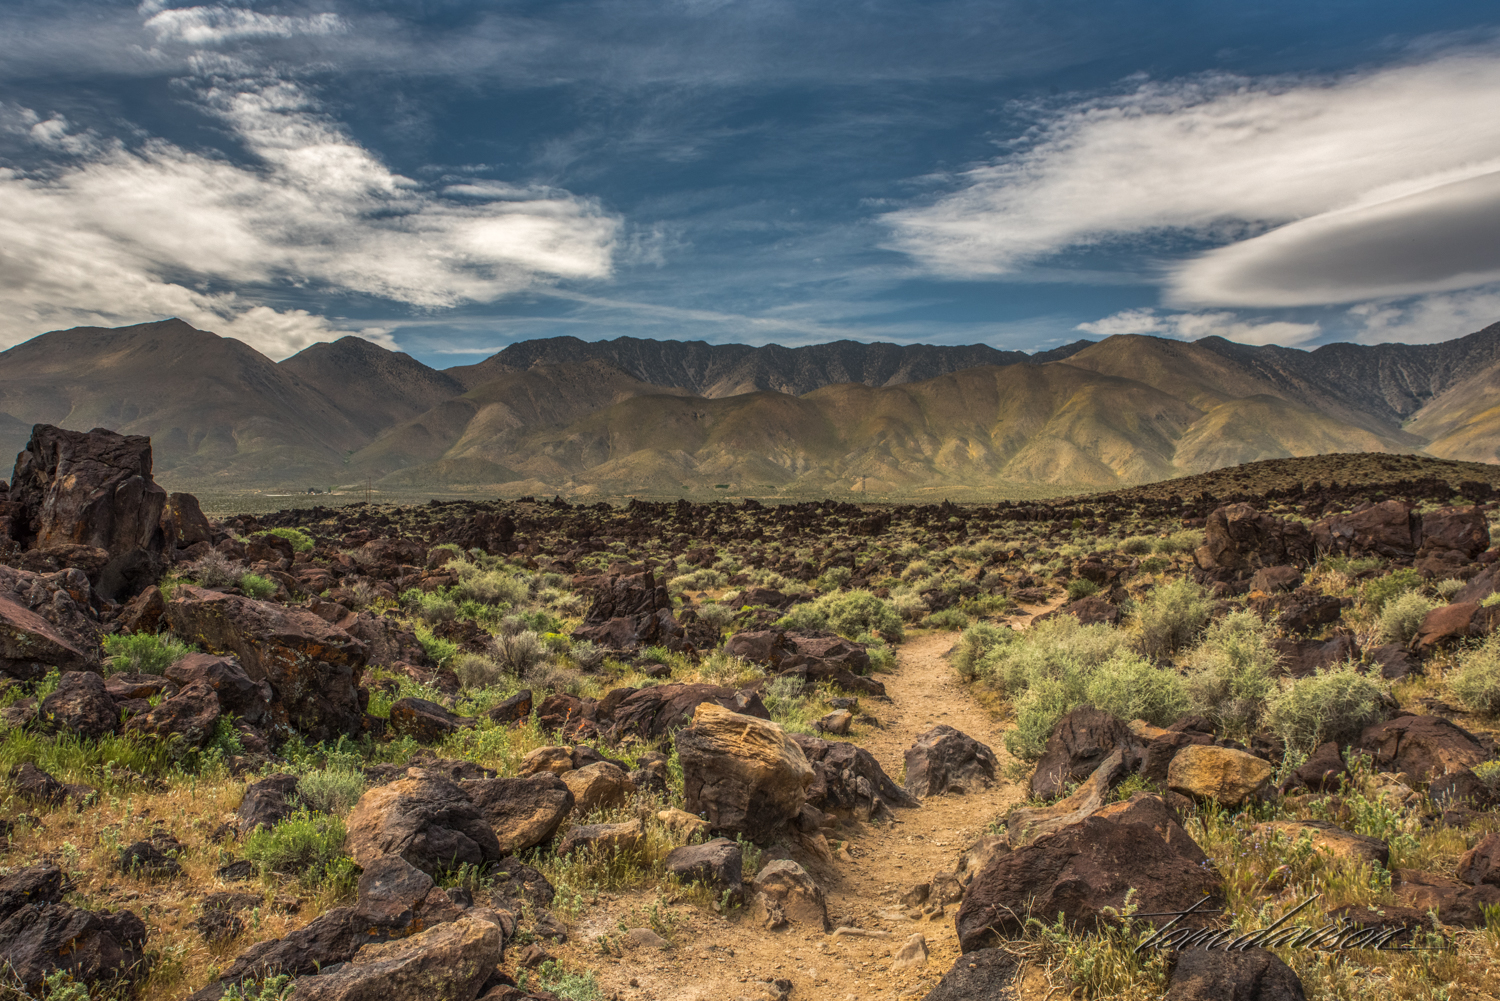 The path leading back to the dry Fossil Falls.